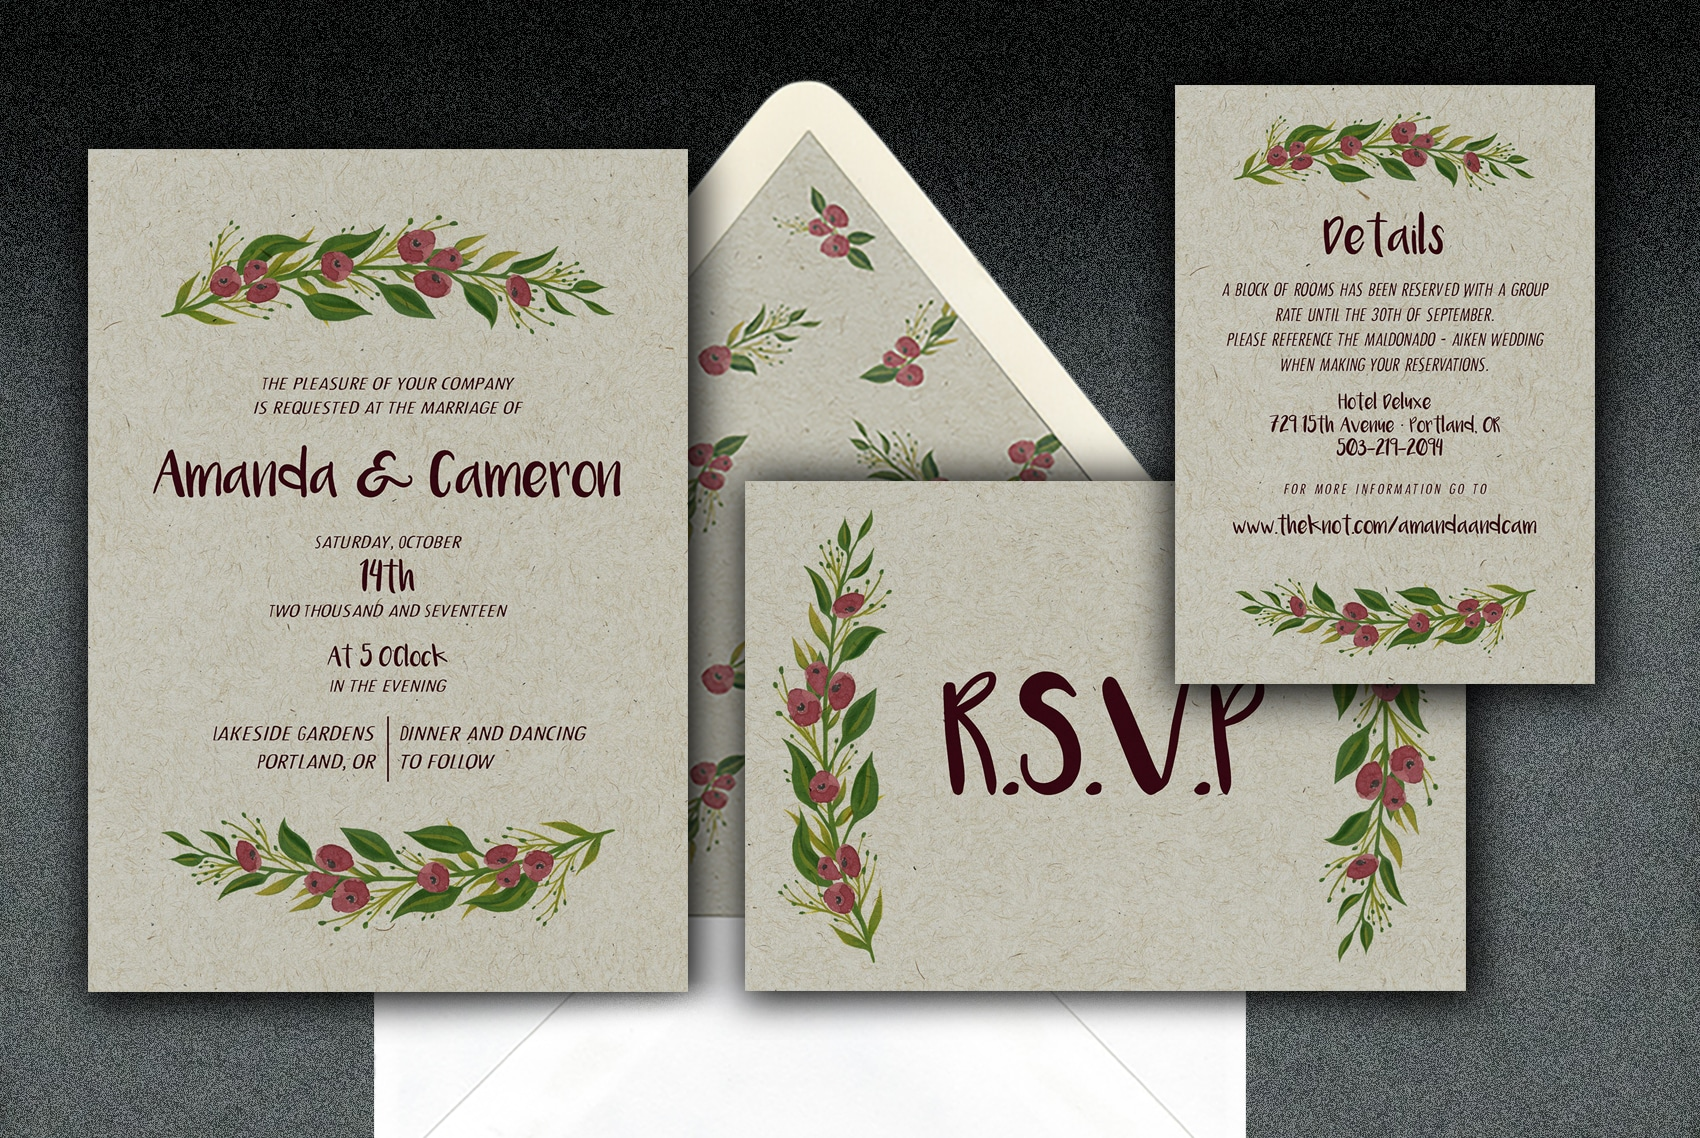 NEW! 100% recycled chipboard kraft creates a warm background for showcasing this festive motif